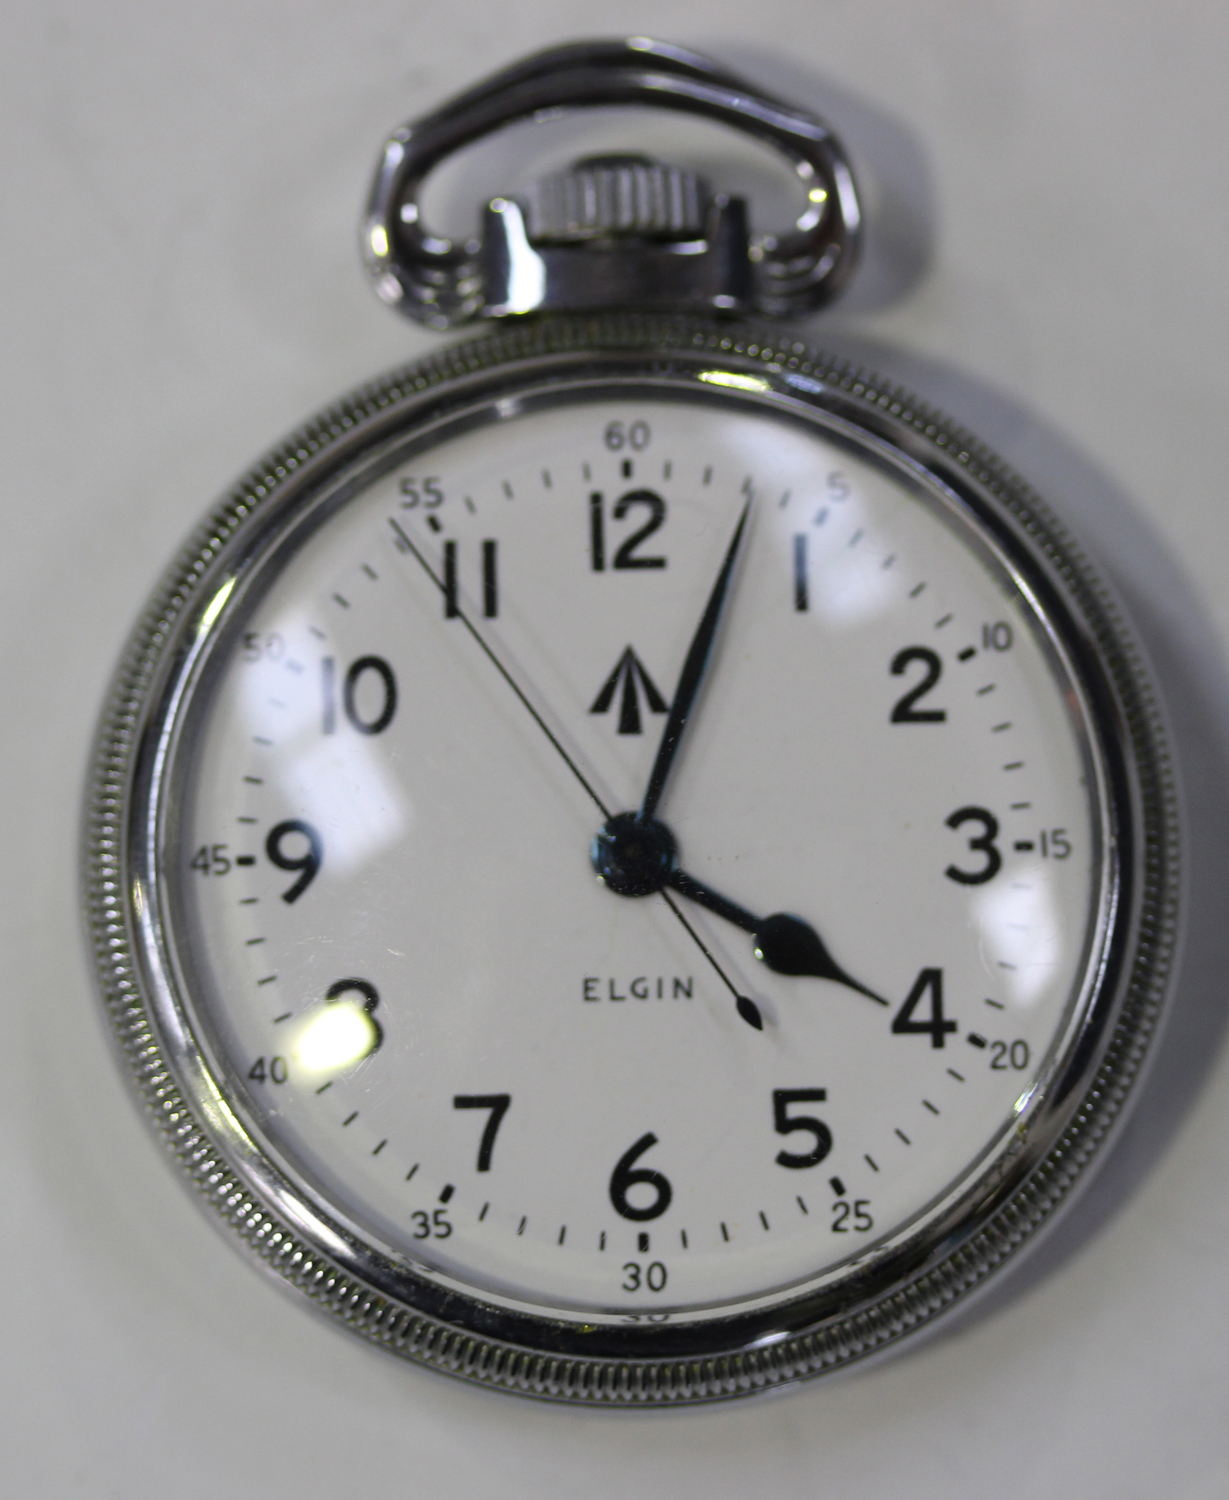 Wristwatches and Pocket Watches